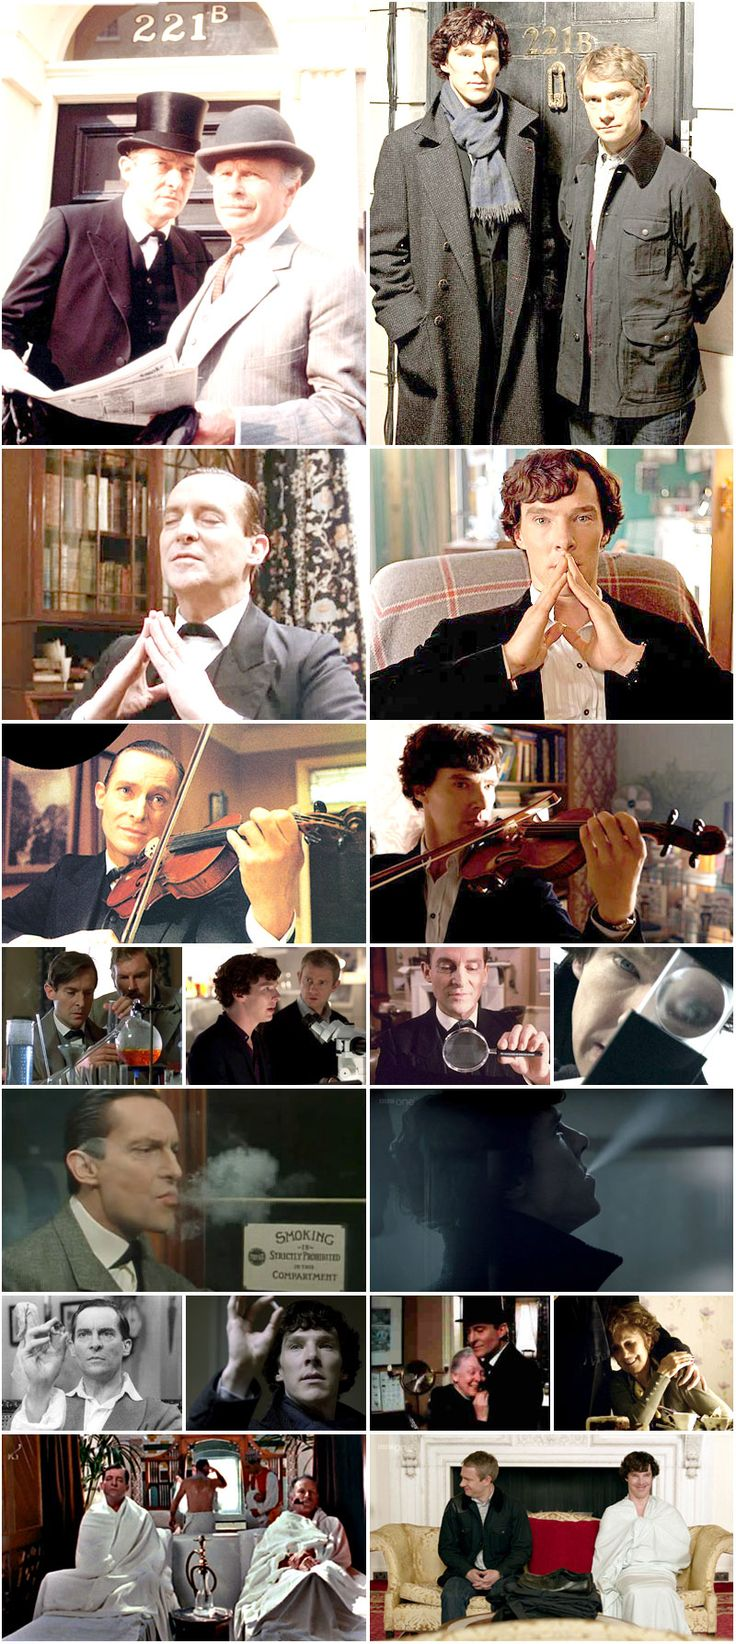 The old and the new. My two favorite Sherlocks: Jeremy Brett & Benedict Cumberbatch. (This is a re-pin, but this one has better resolution. And, I never get tired of looking at it! -G.H.)